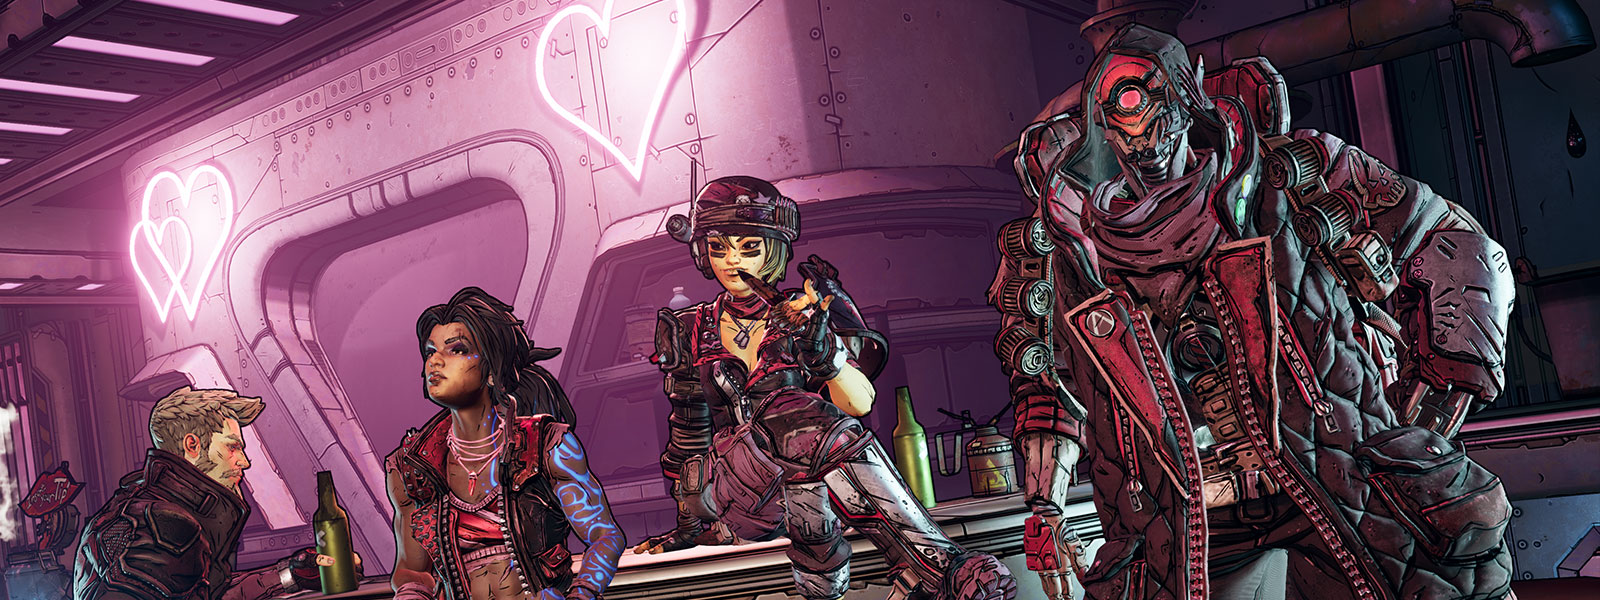 Borderlands 3 characters gather sadly around a bar decorated with neon hearts